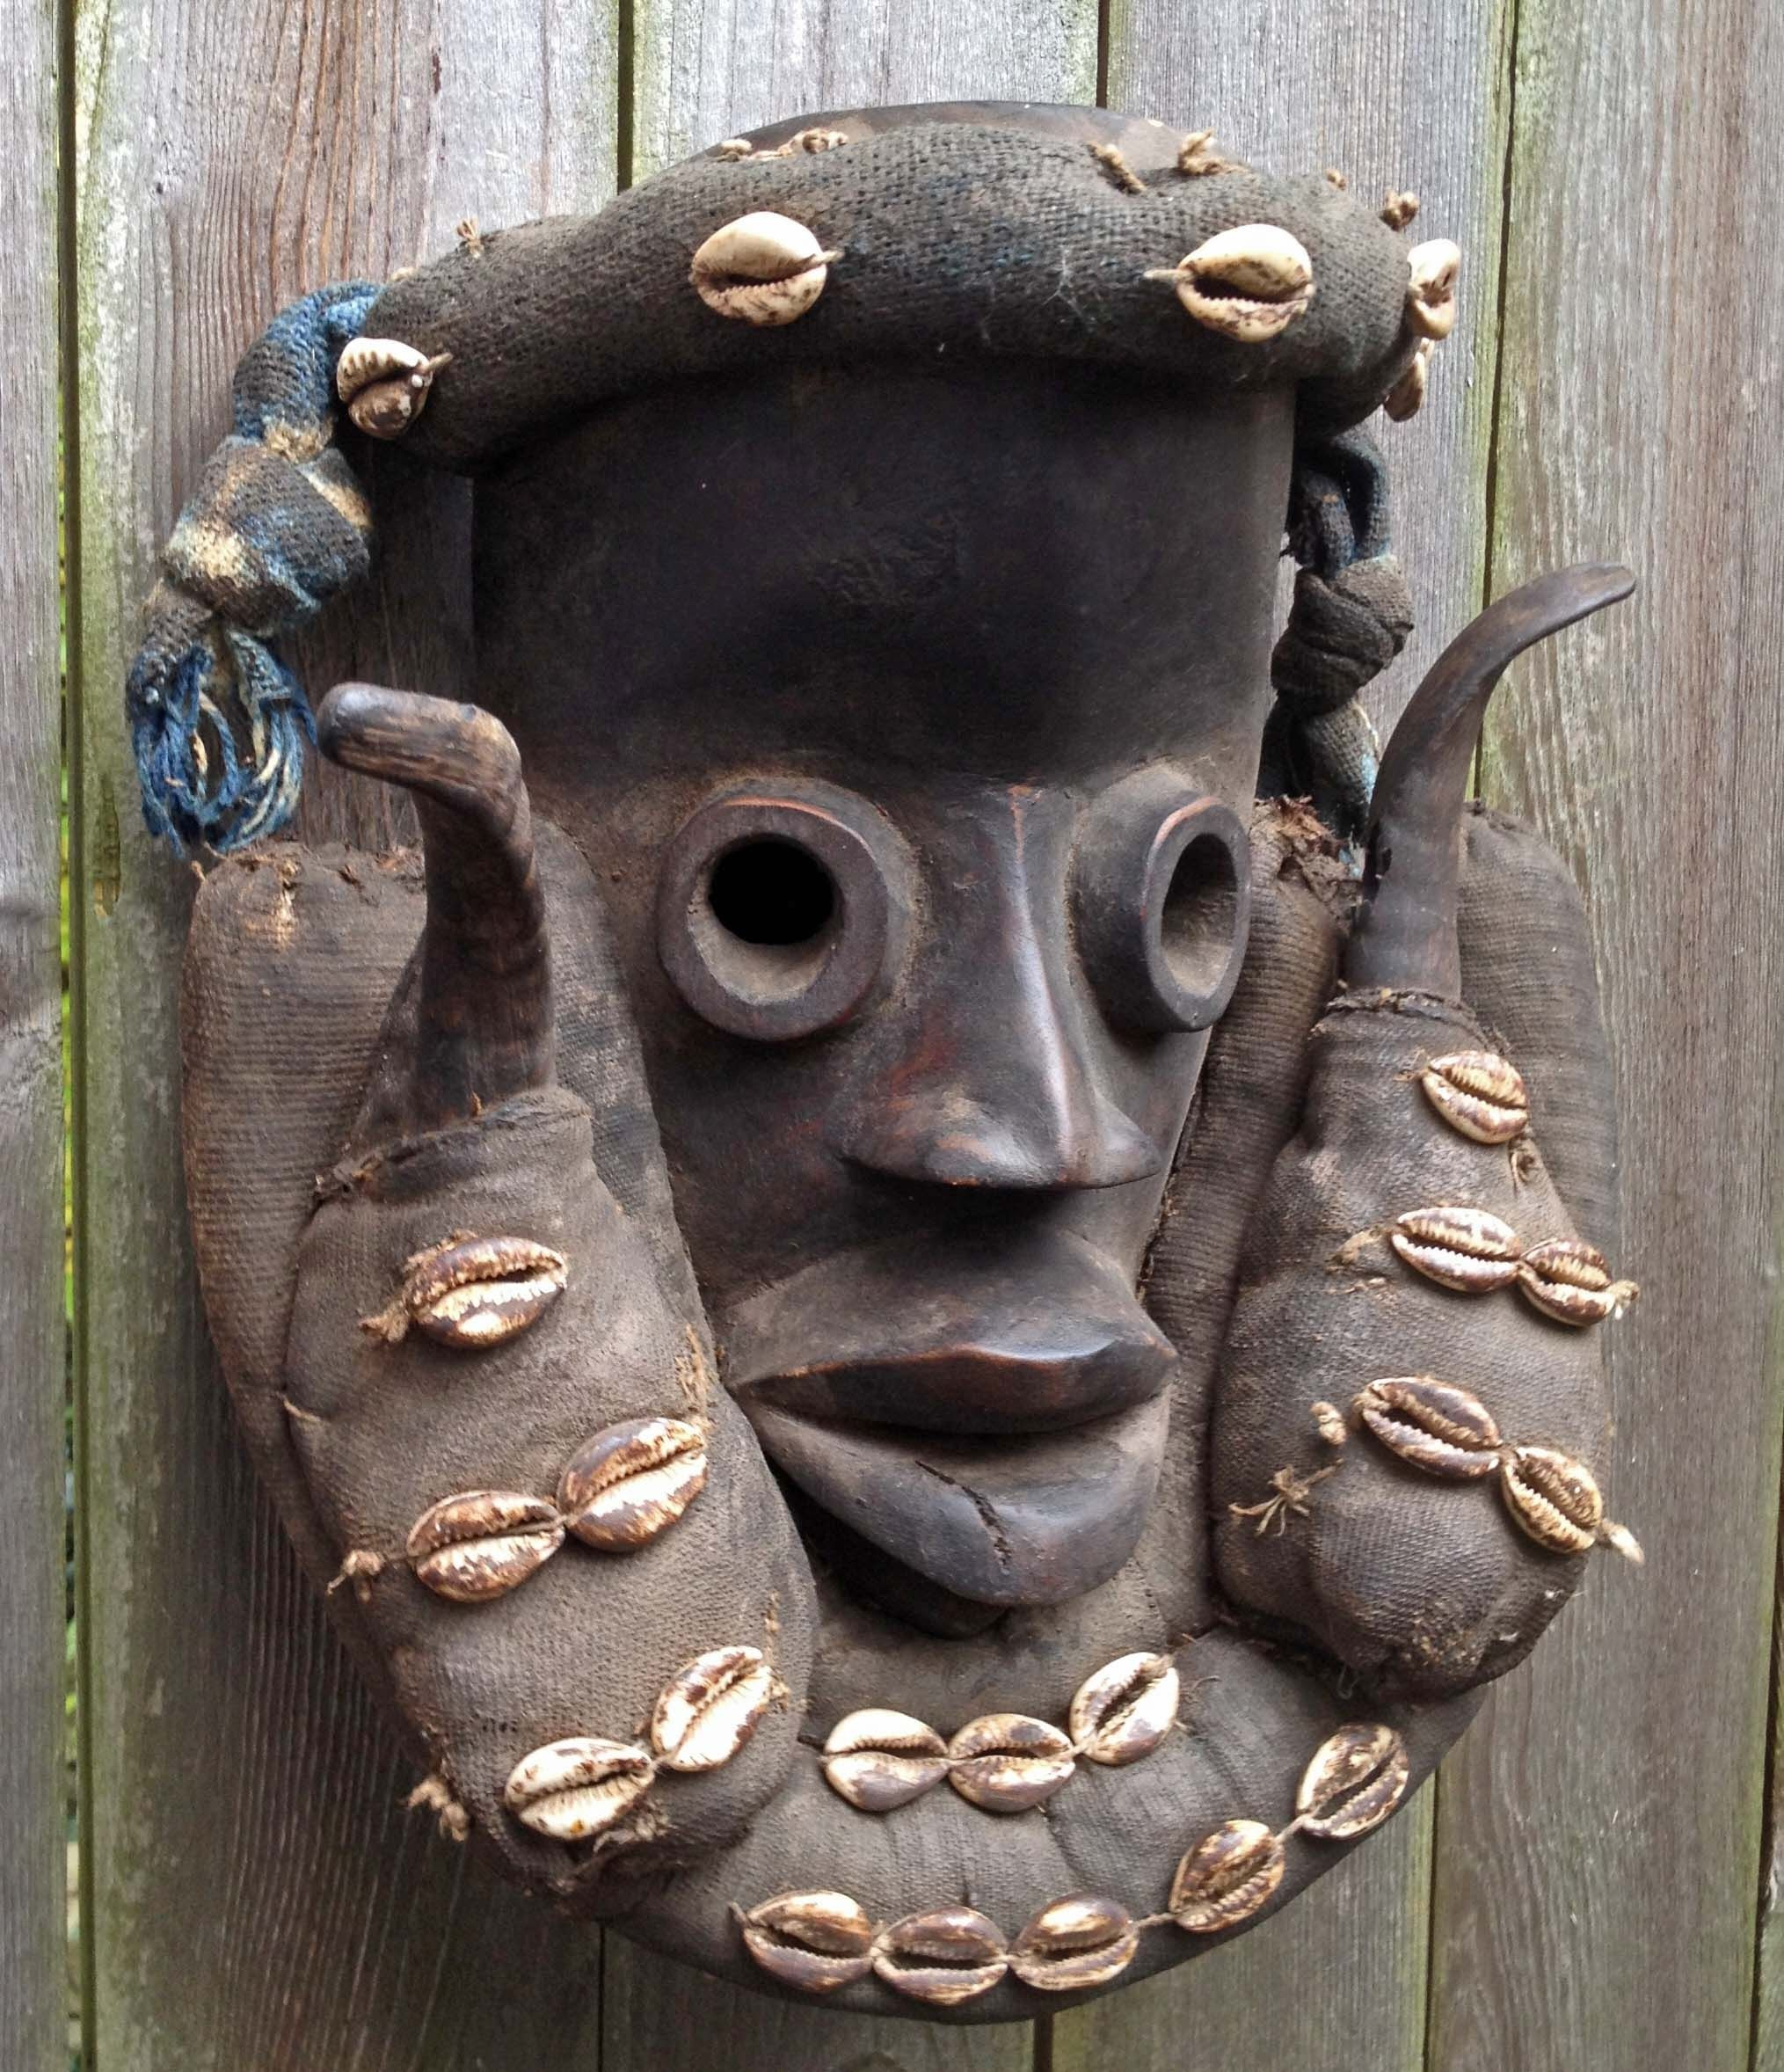 MASK,DAN,TRIBE,CARVED,WOOD,FABRIC,FIBER,BEARD,IVORY,COAST,LIBERIA,AFRICA,MASK,MAGIC,